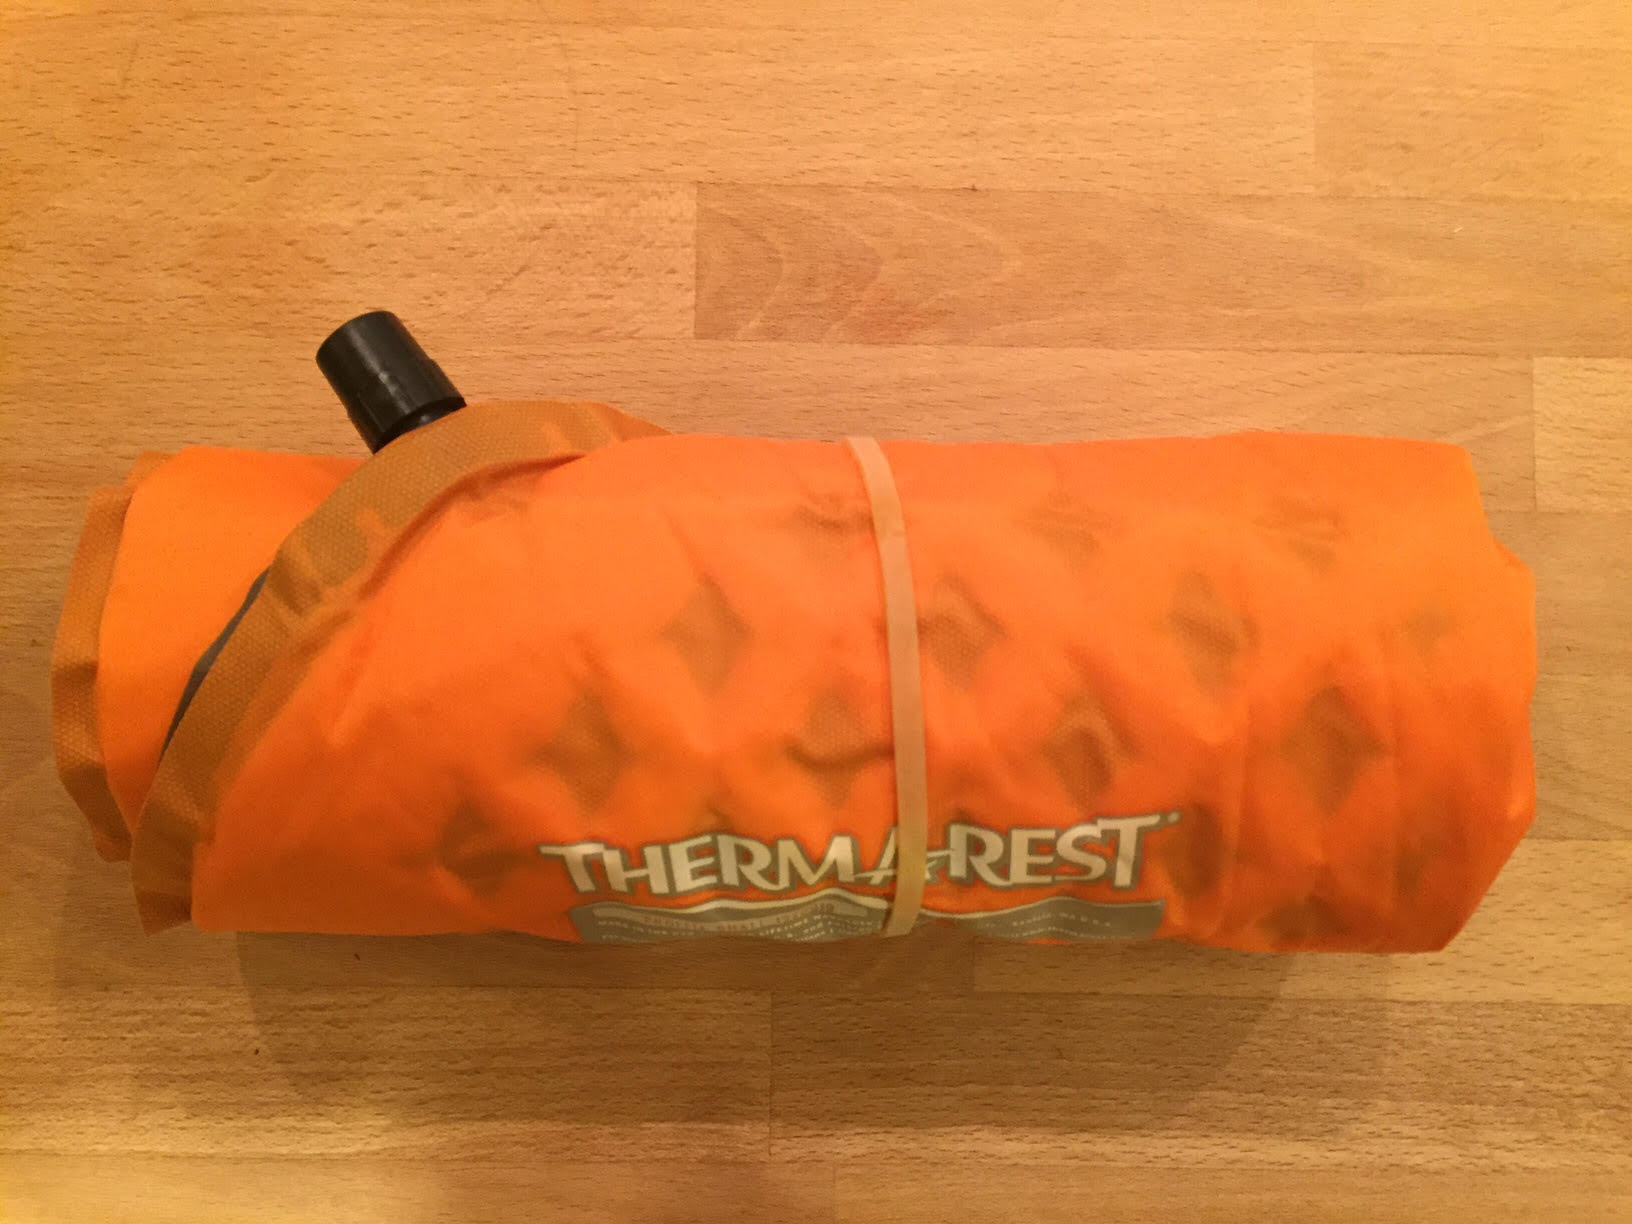 thermarest repair kit instructions